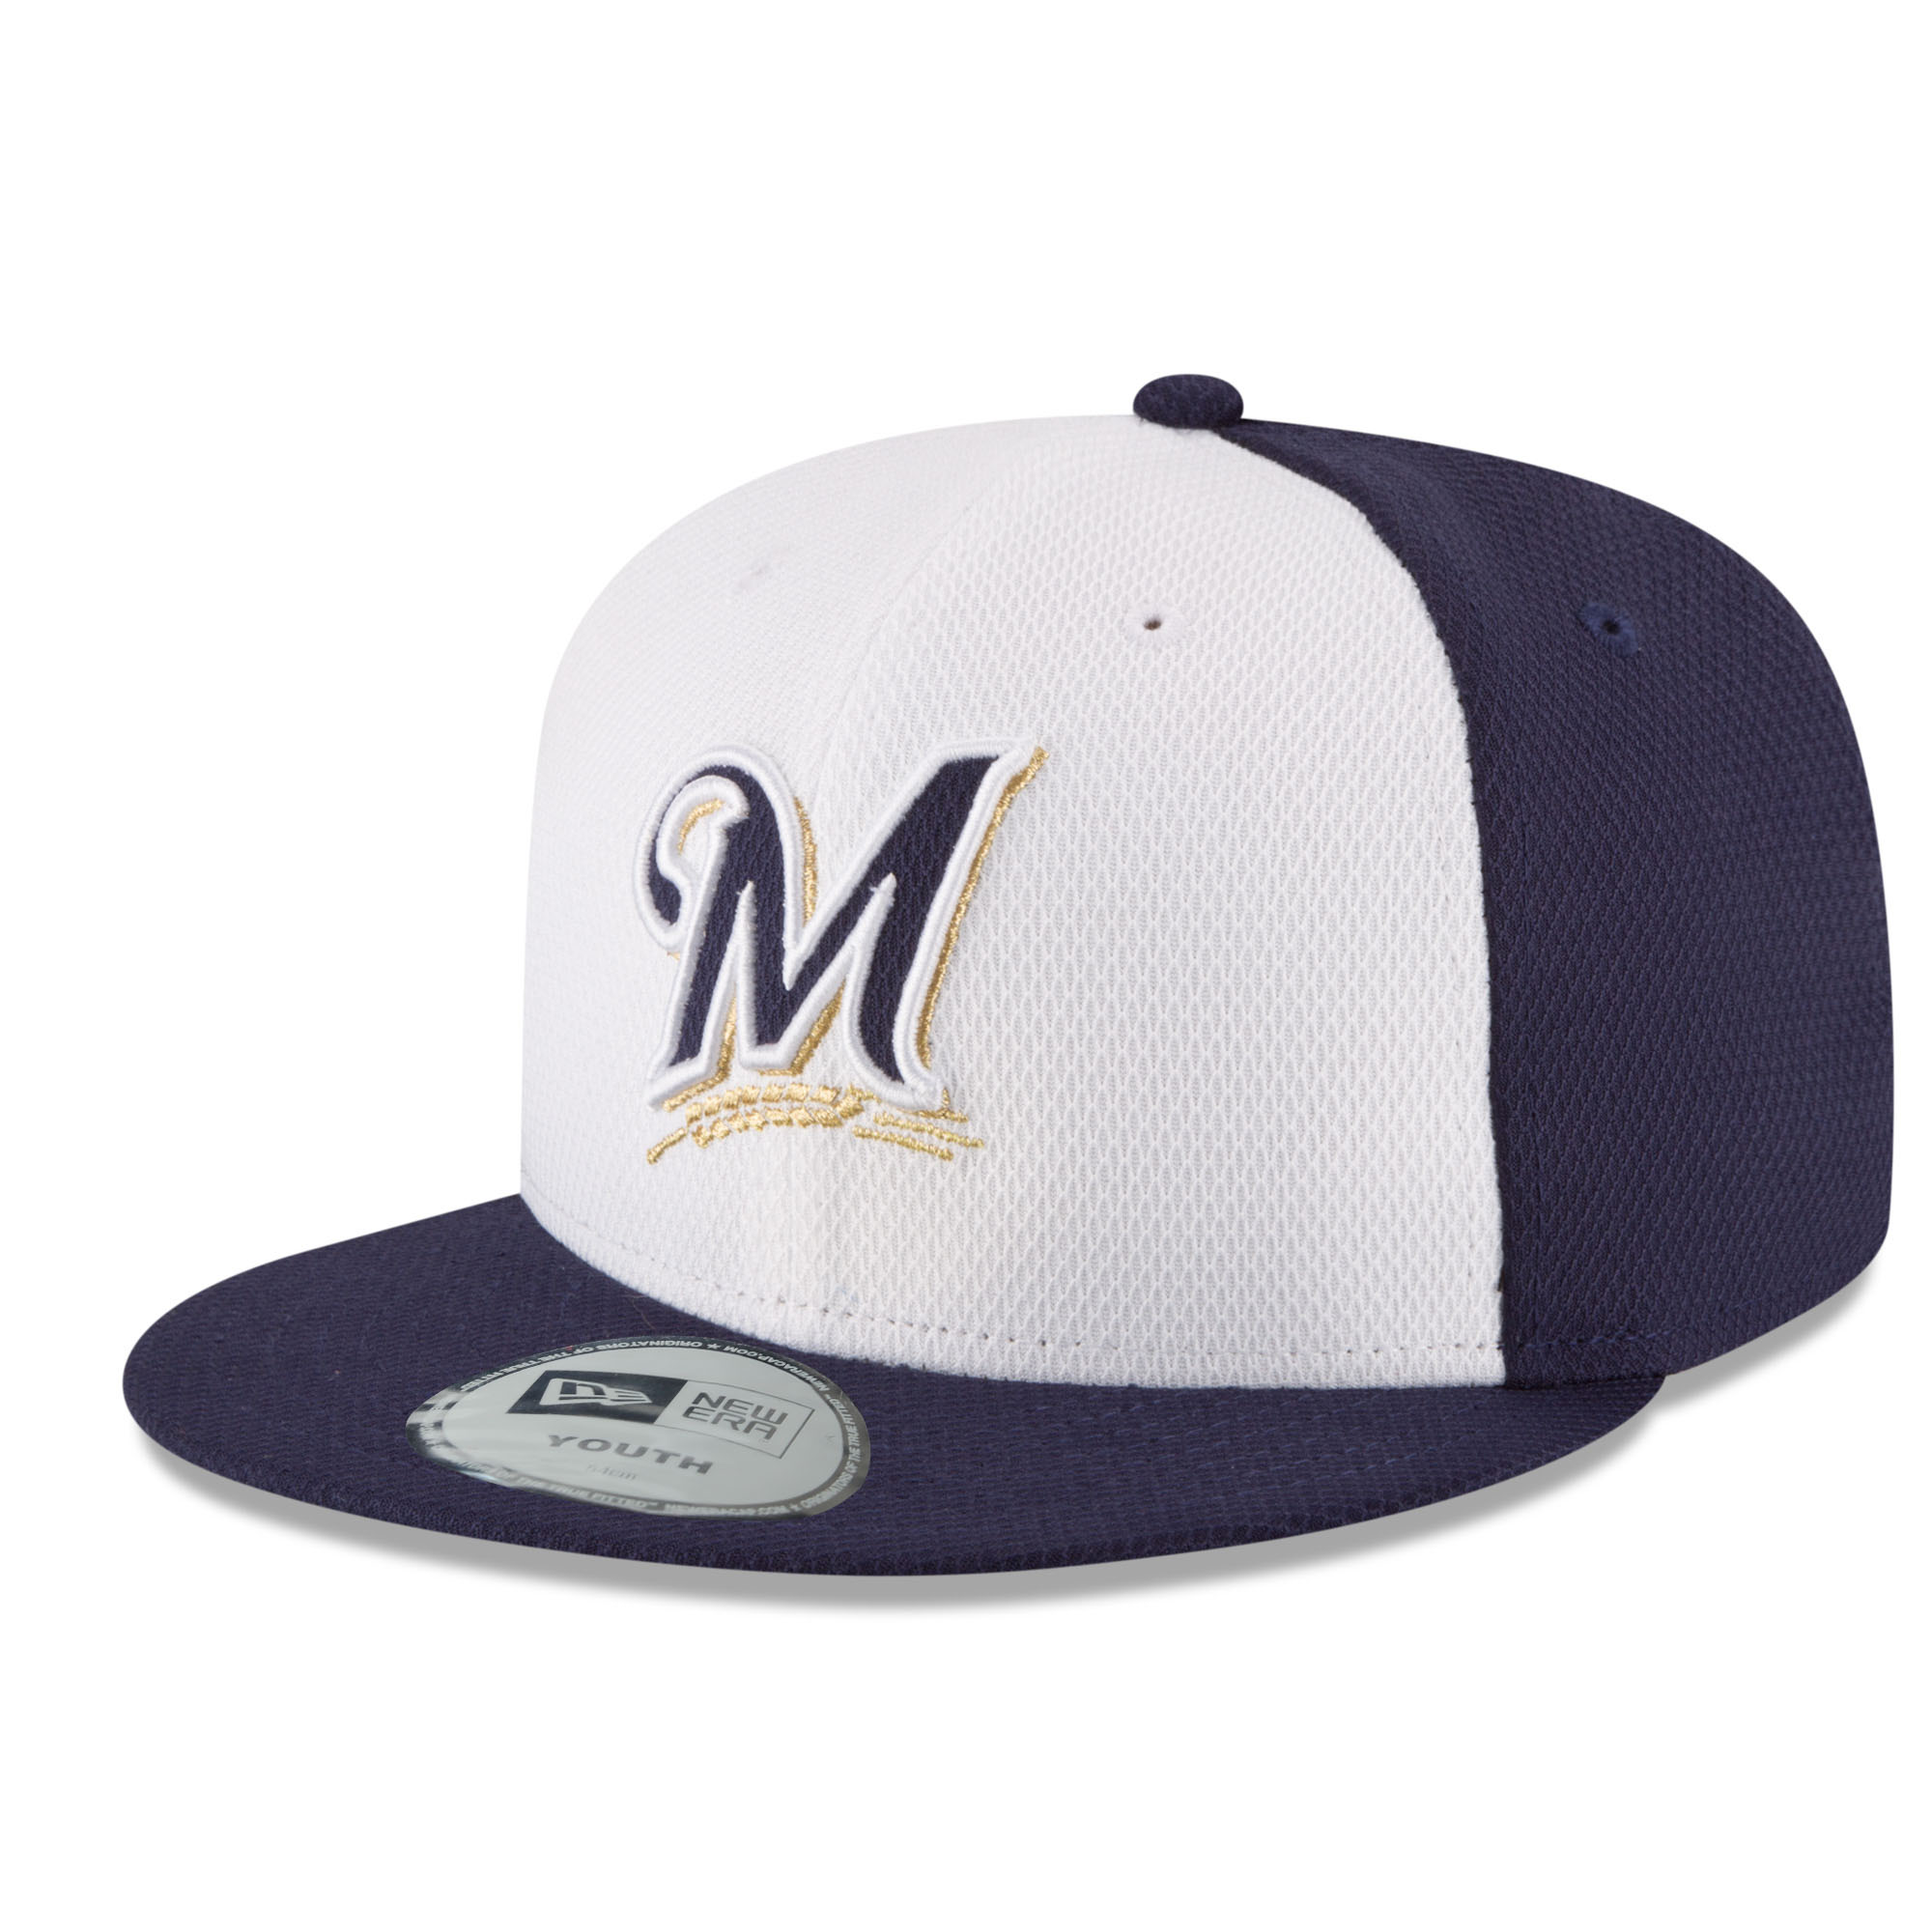 Milwaukee Brewers New Era Youth Road Diamond Era 59FIFTY Fitted Hat - Navy/White